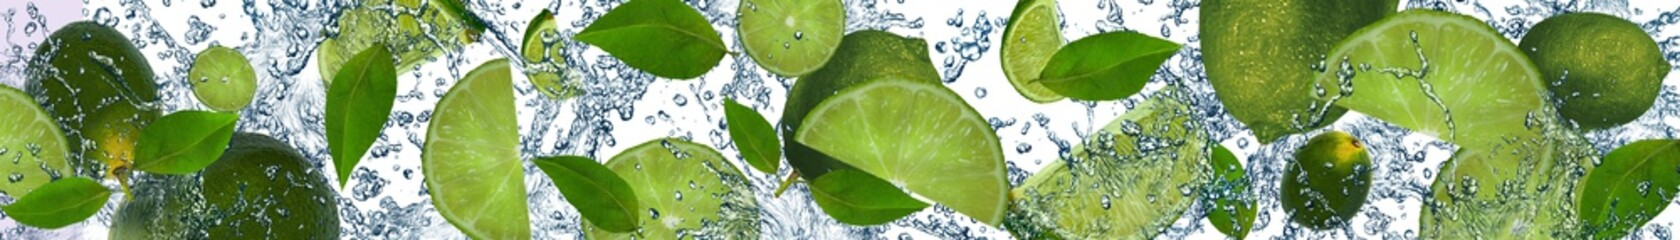 Limes in the water © savojr